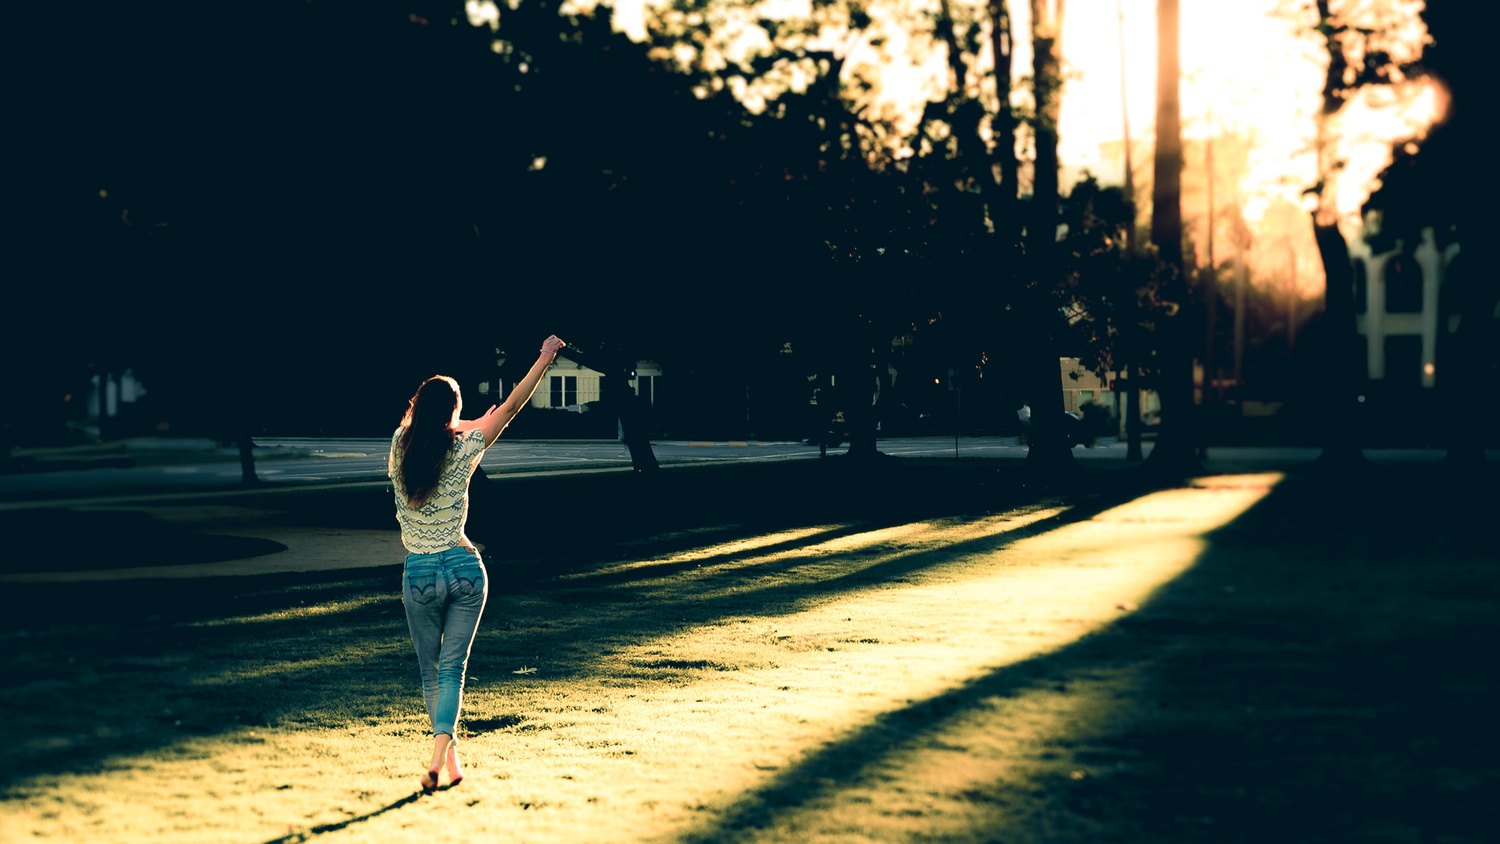 woman dancing in the sunset in balboa park by Ian Meyers